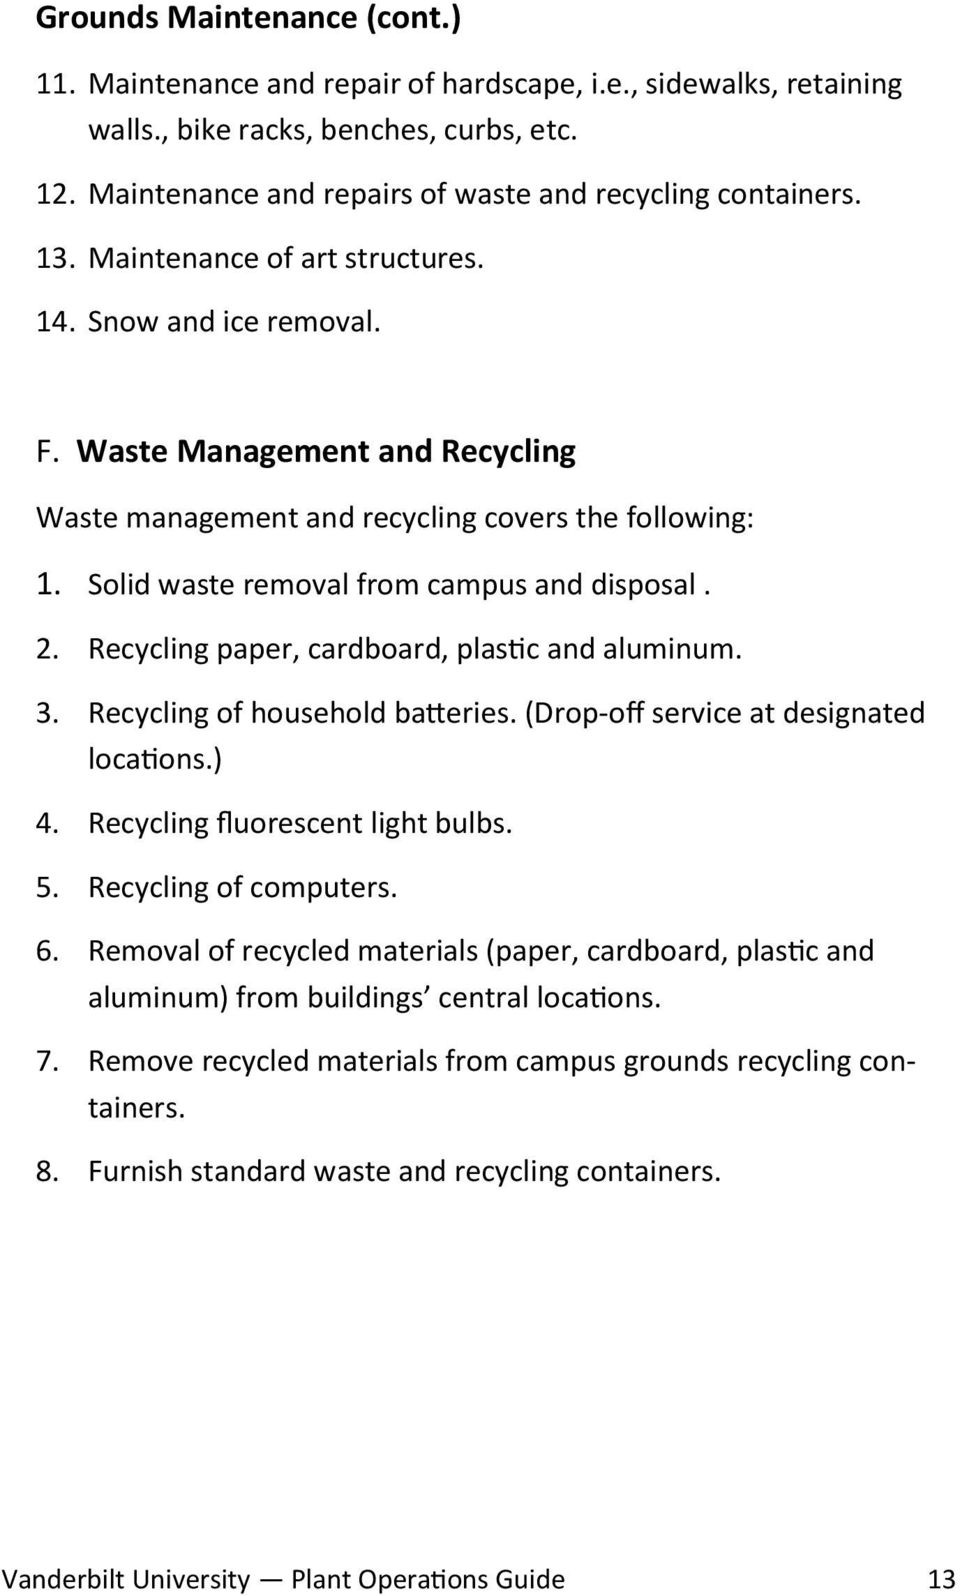 Recycling paper, cardboard, plastic and aluminum. 3. Recycling of household batteries. (Drop-off service at designated locations.) 4. Recycling fluorescent light bulbs. 5. Recycling of computers. 6.